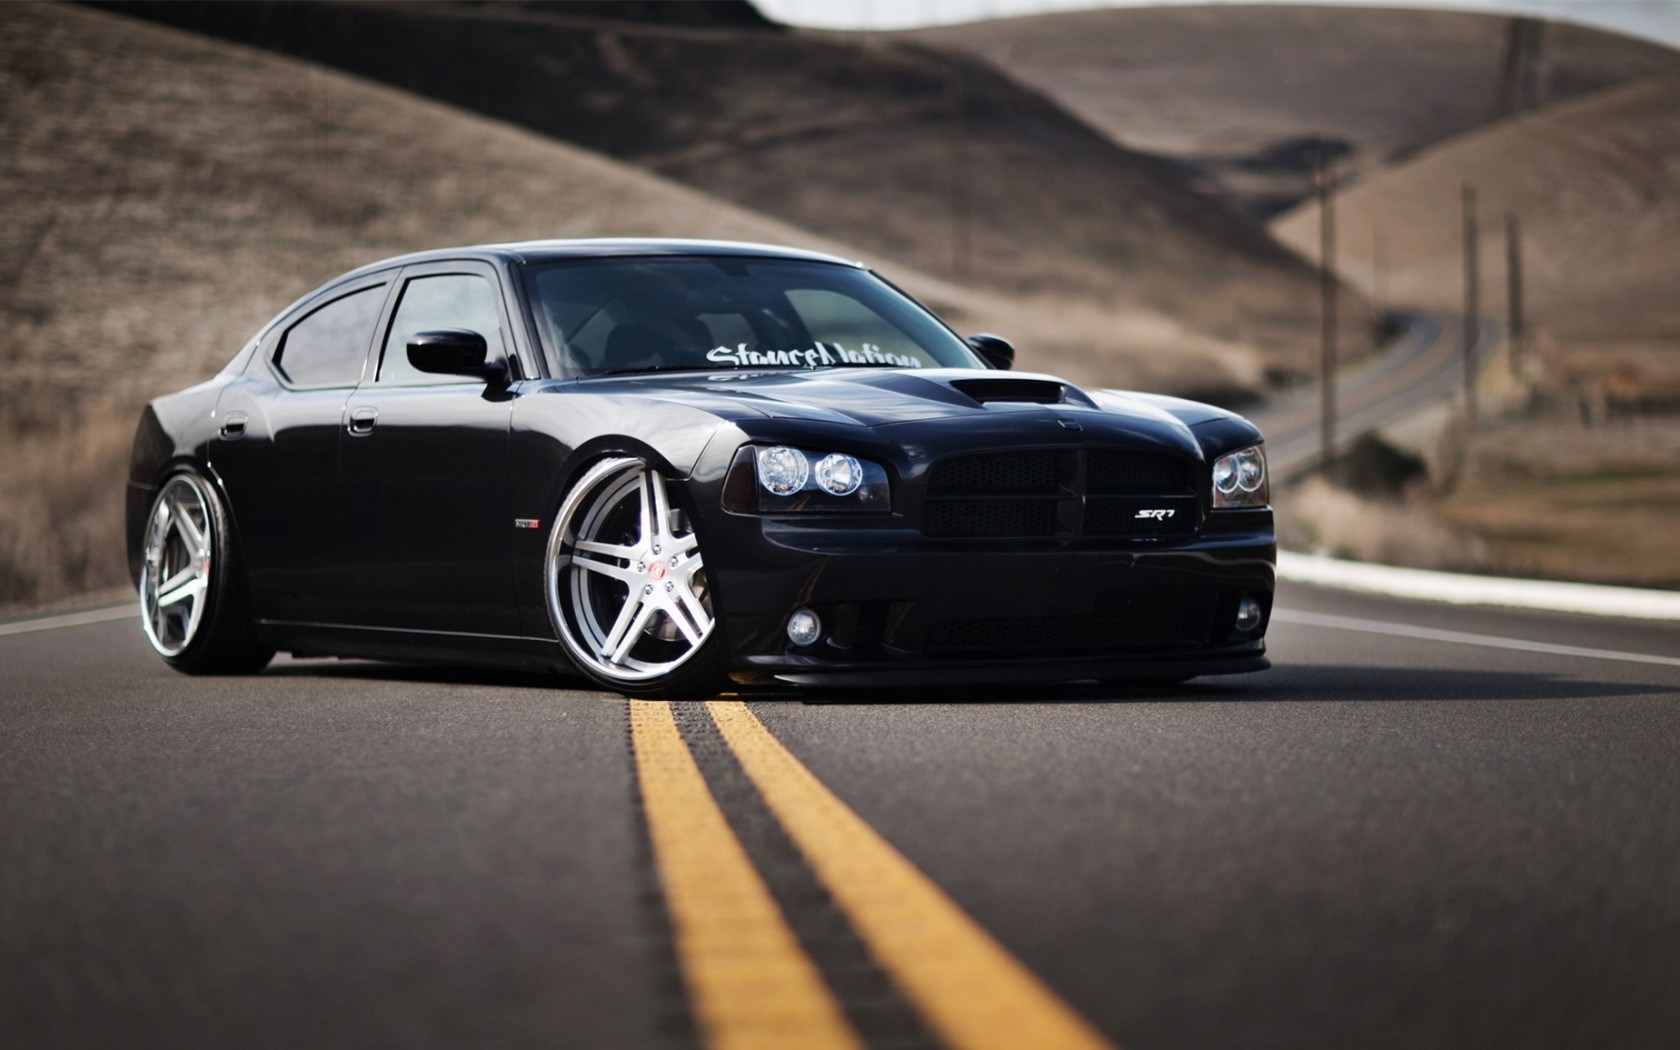 Dodge Charger SRT8 Black Car Tuning